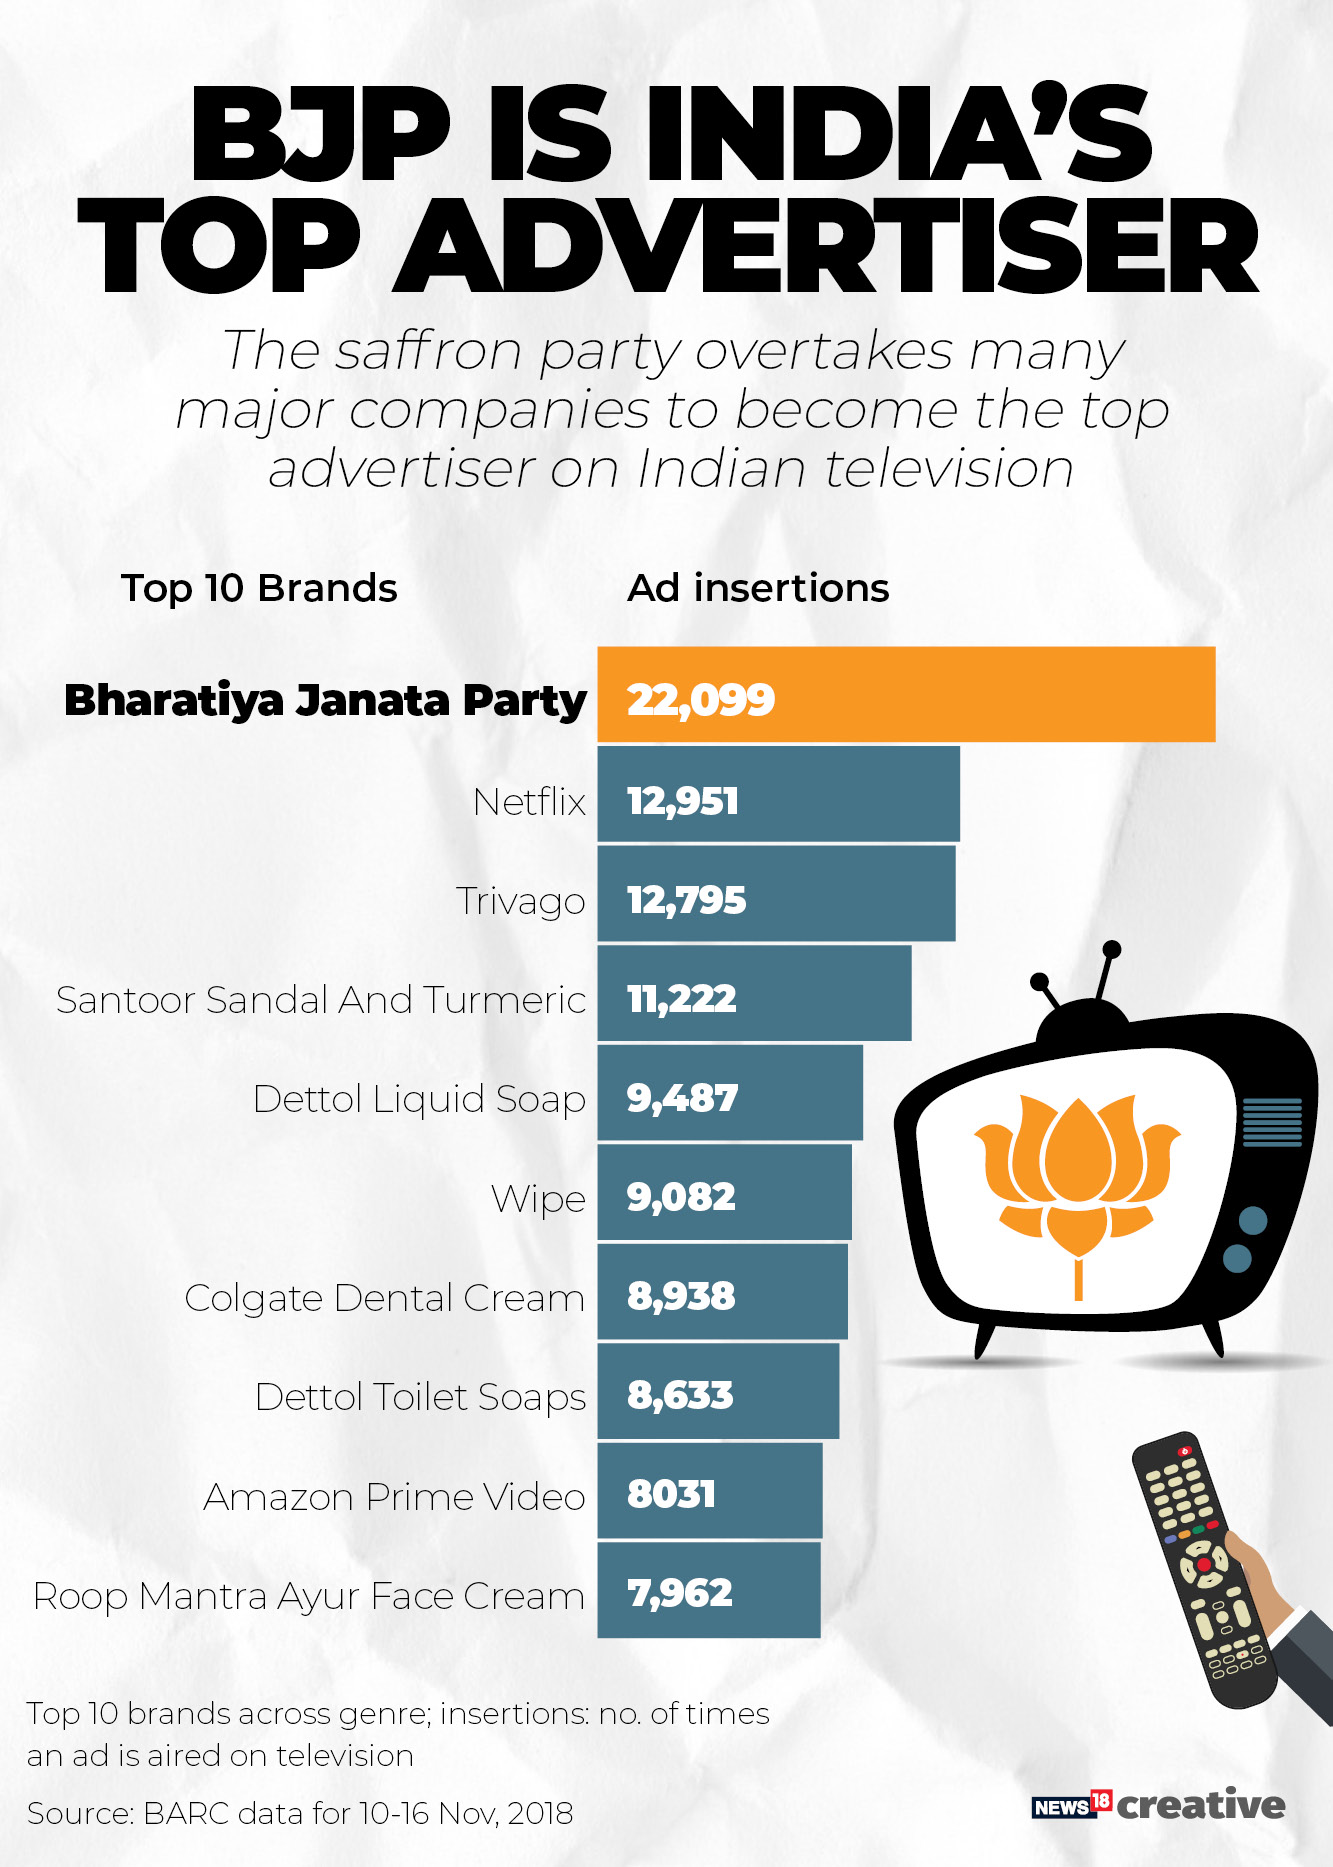 BJP Top advertiser